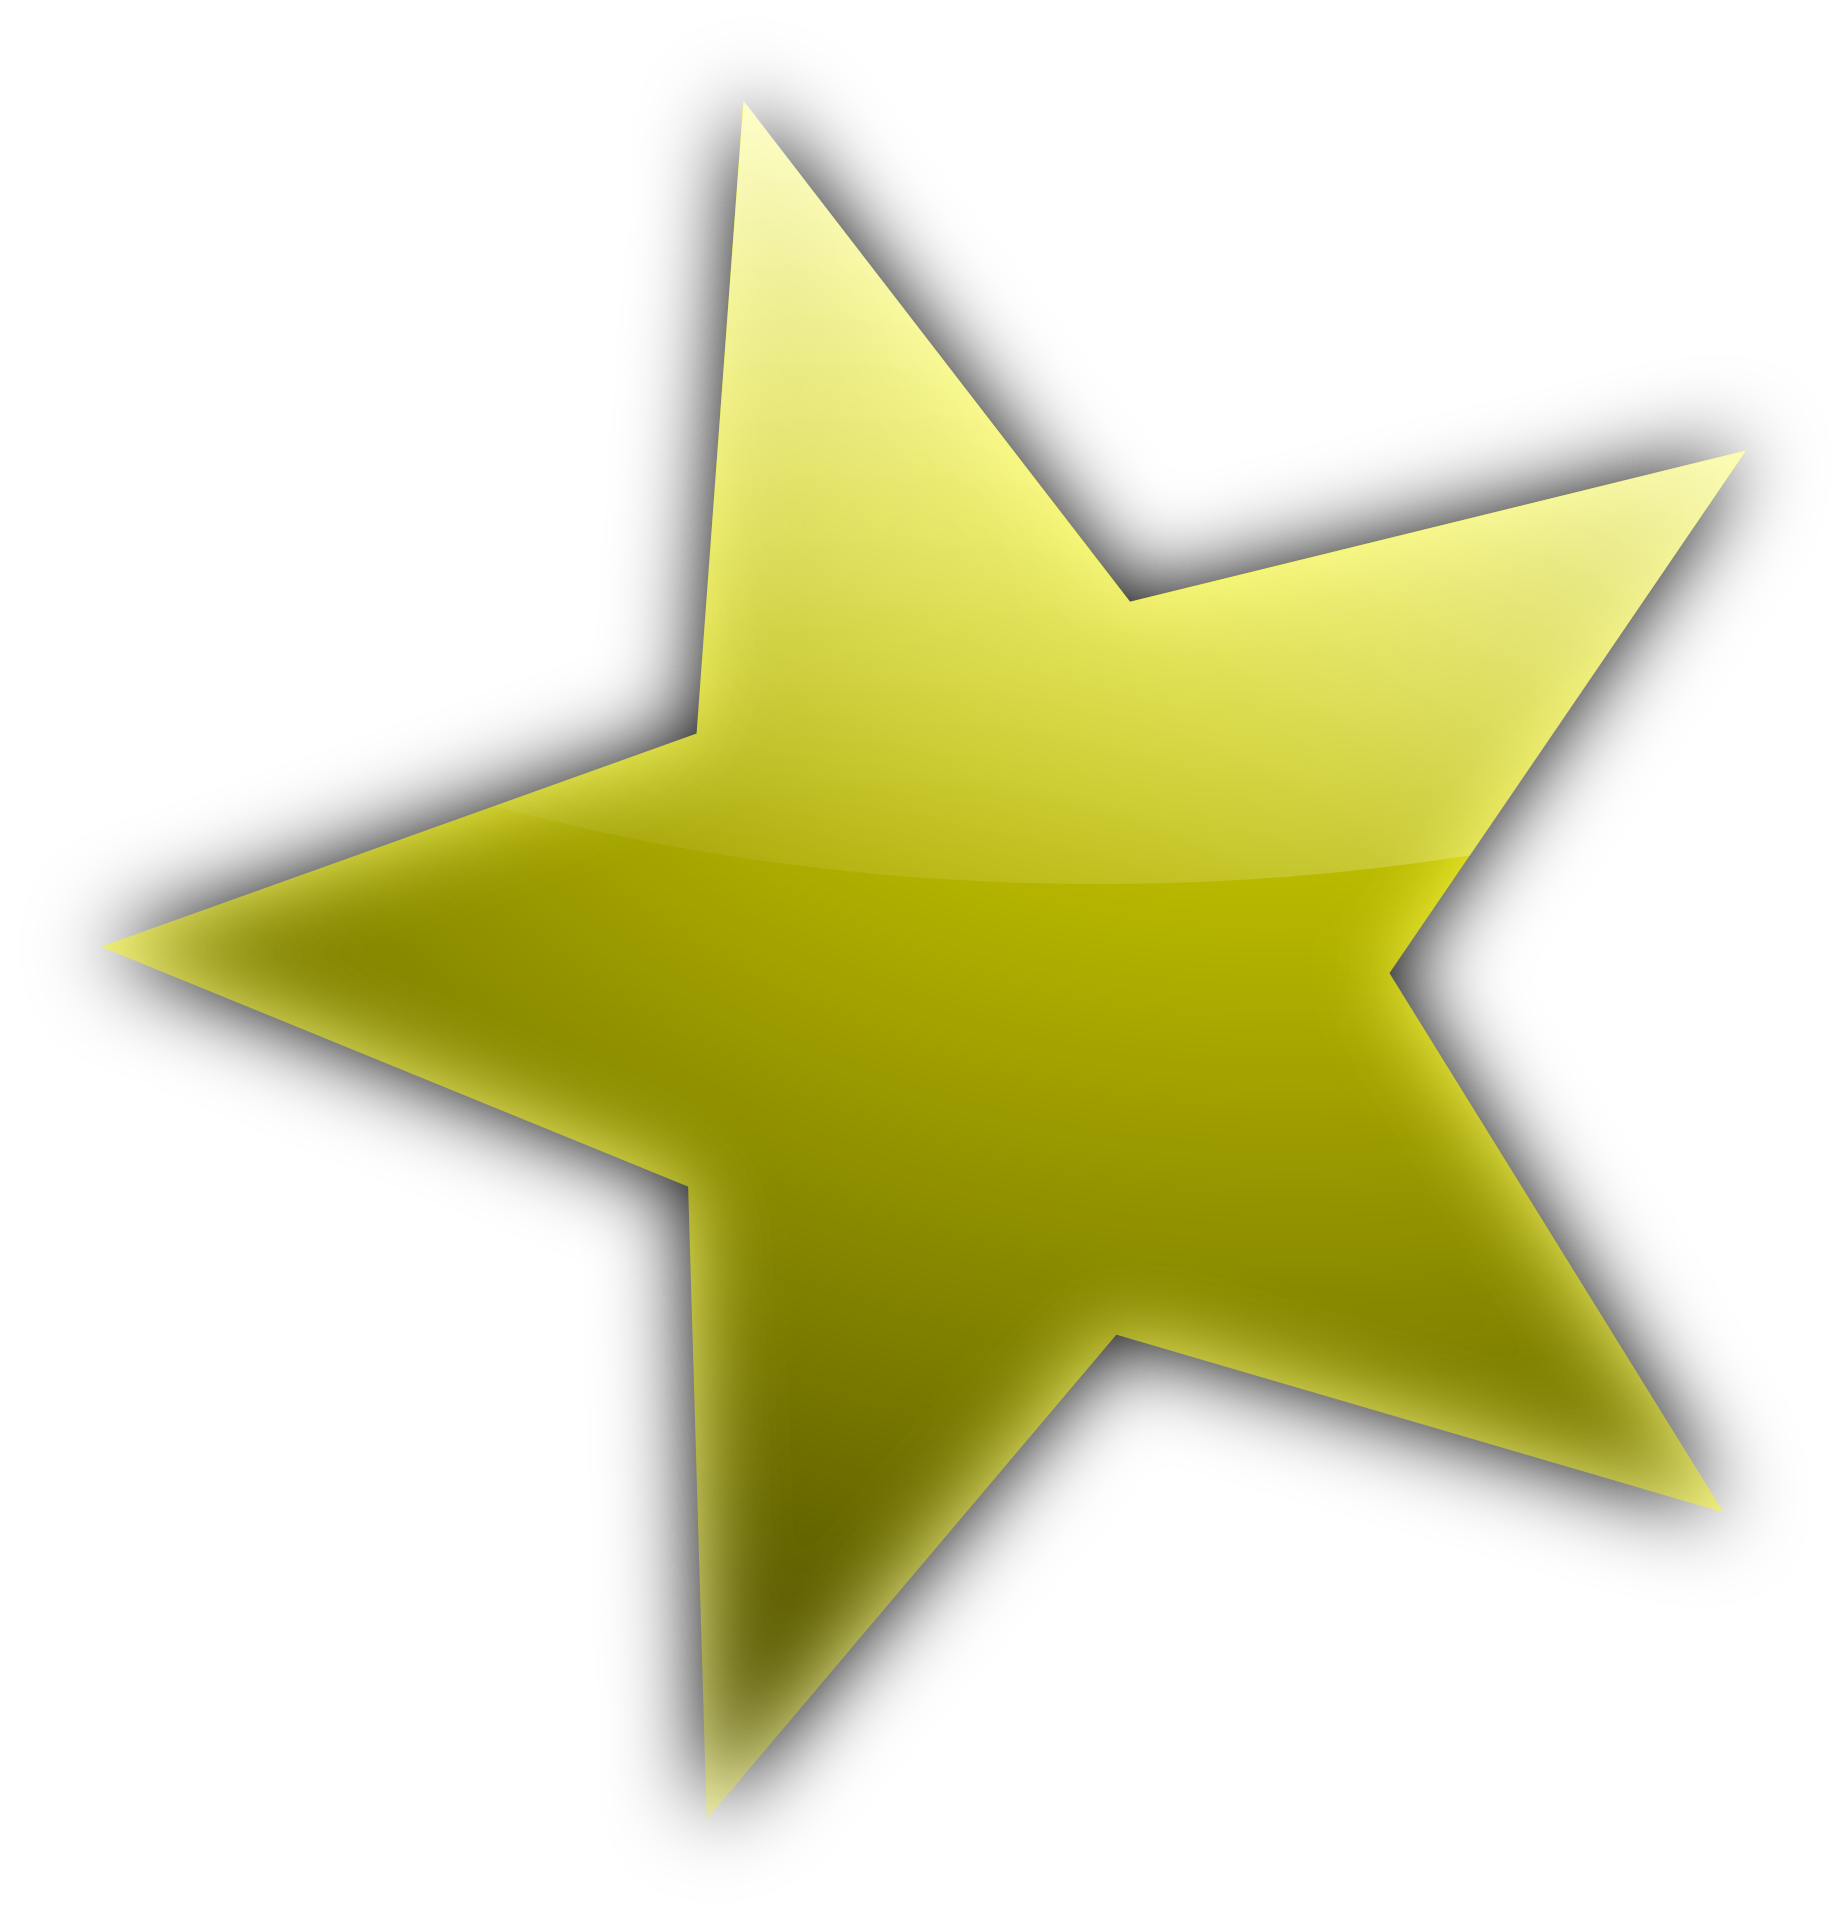 Pointing clipart star shape, Pointing star shape ...